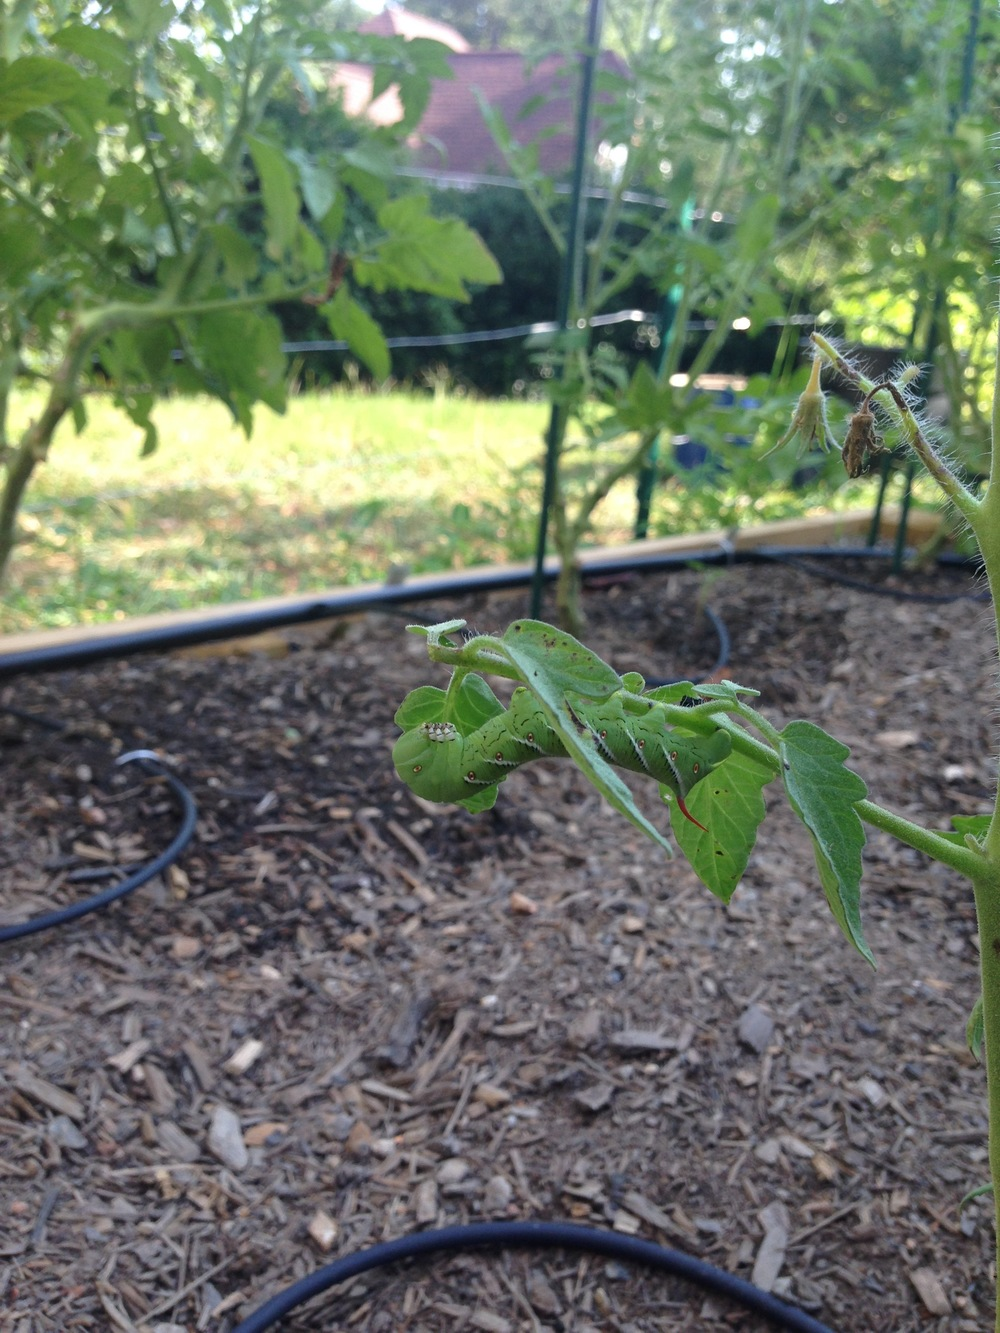 Hornworm on my Lemon Boy tomato plant